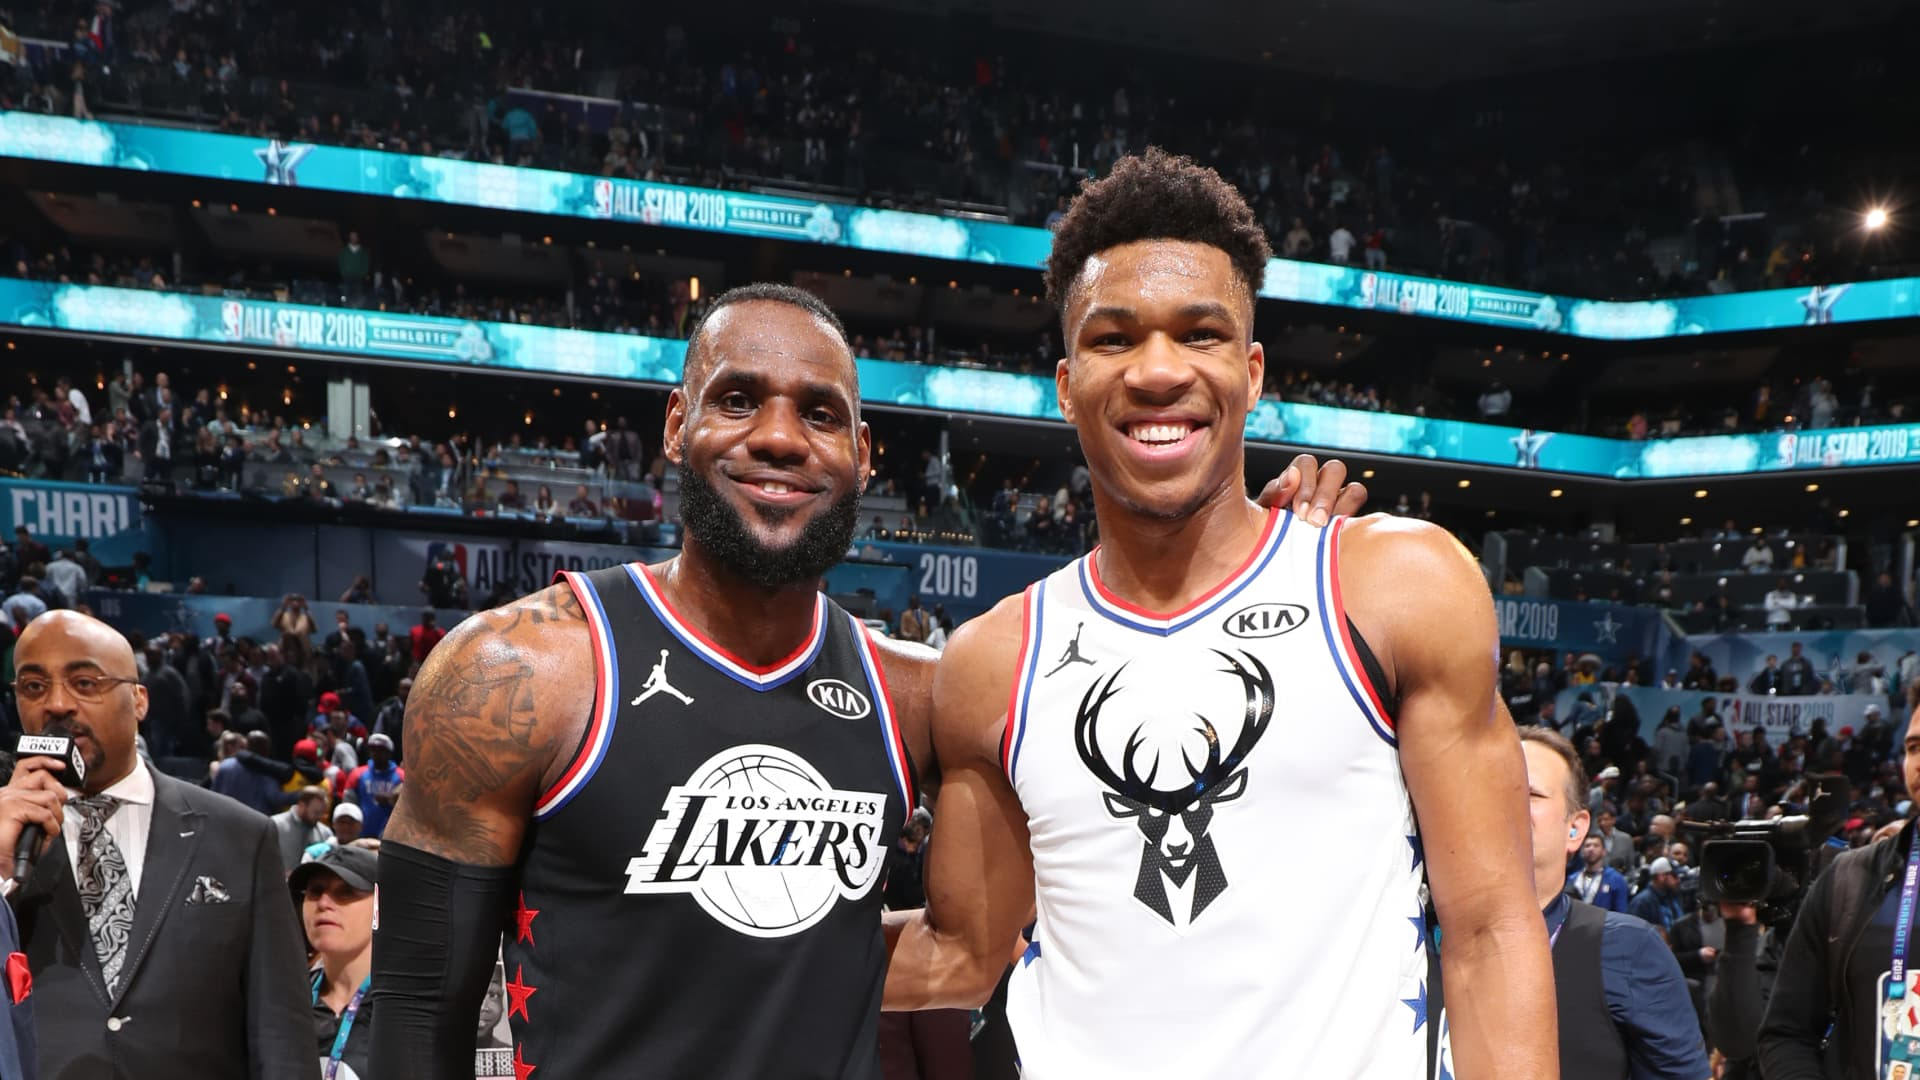 LeBron James of Team LeBron and Giannis Antetokounmpo of Team Giannis pose for a photo after the 2019 NBA All-Star Game